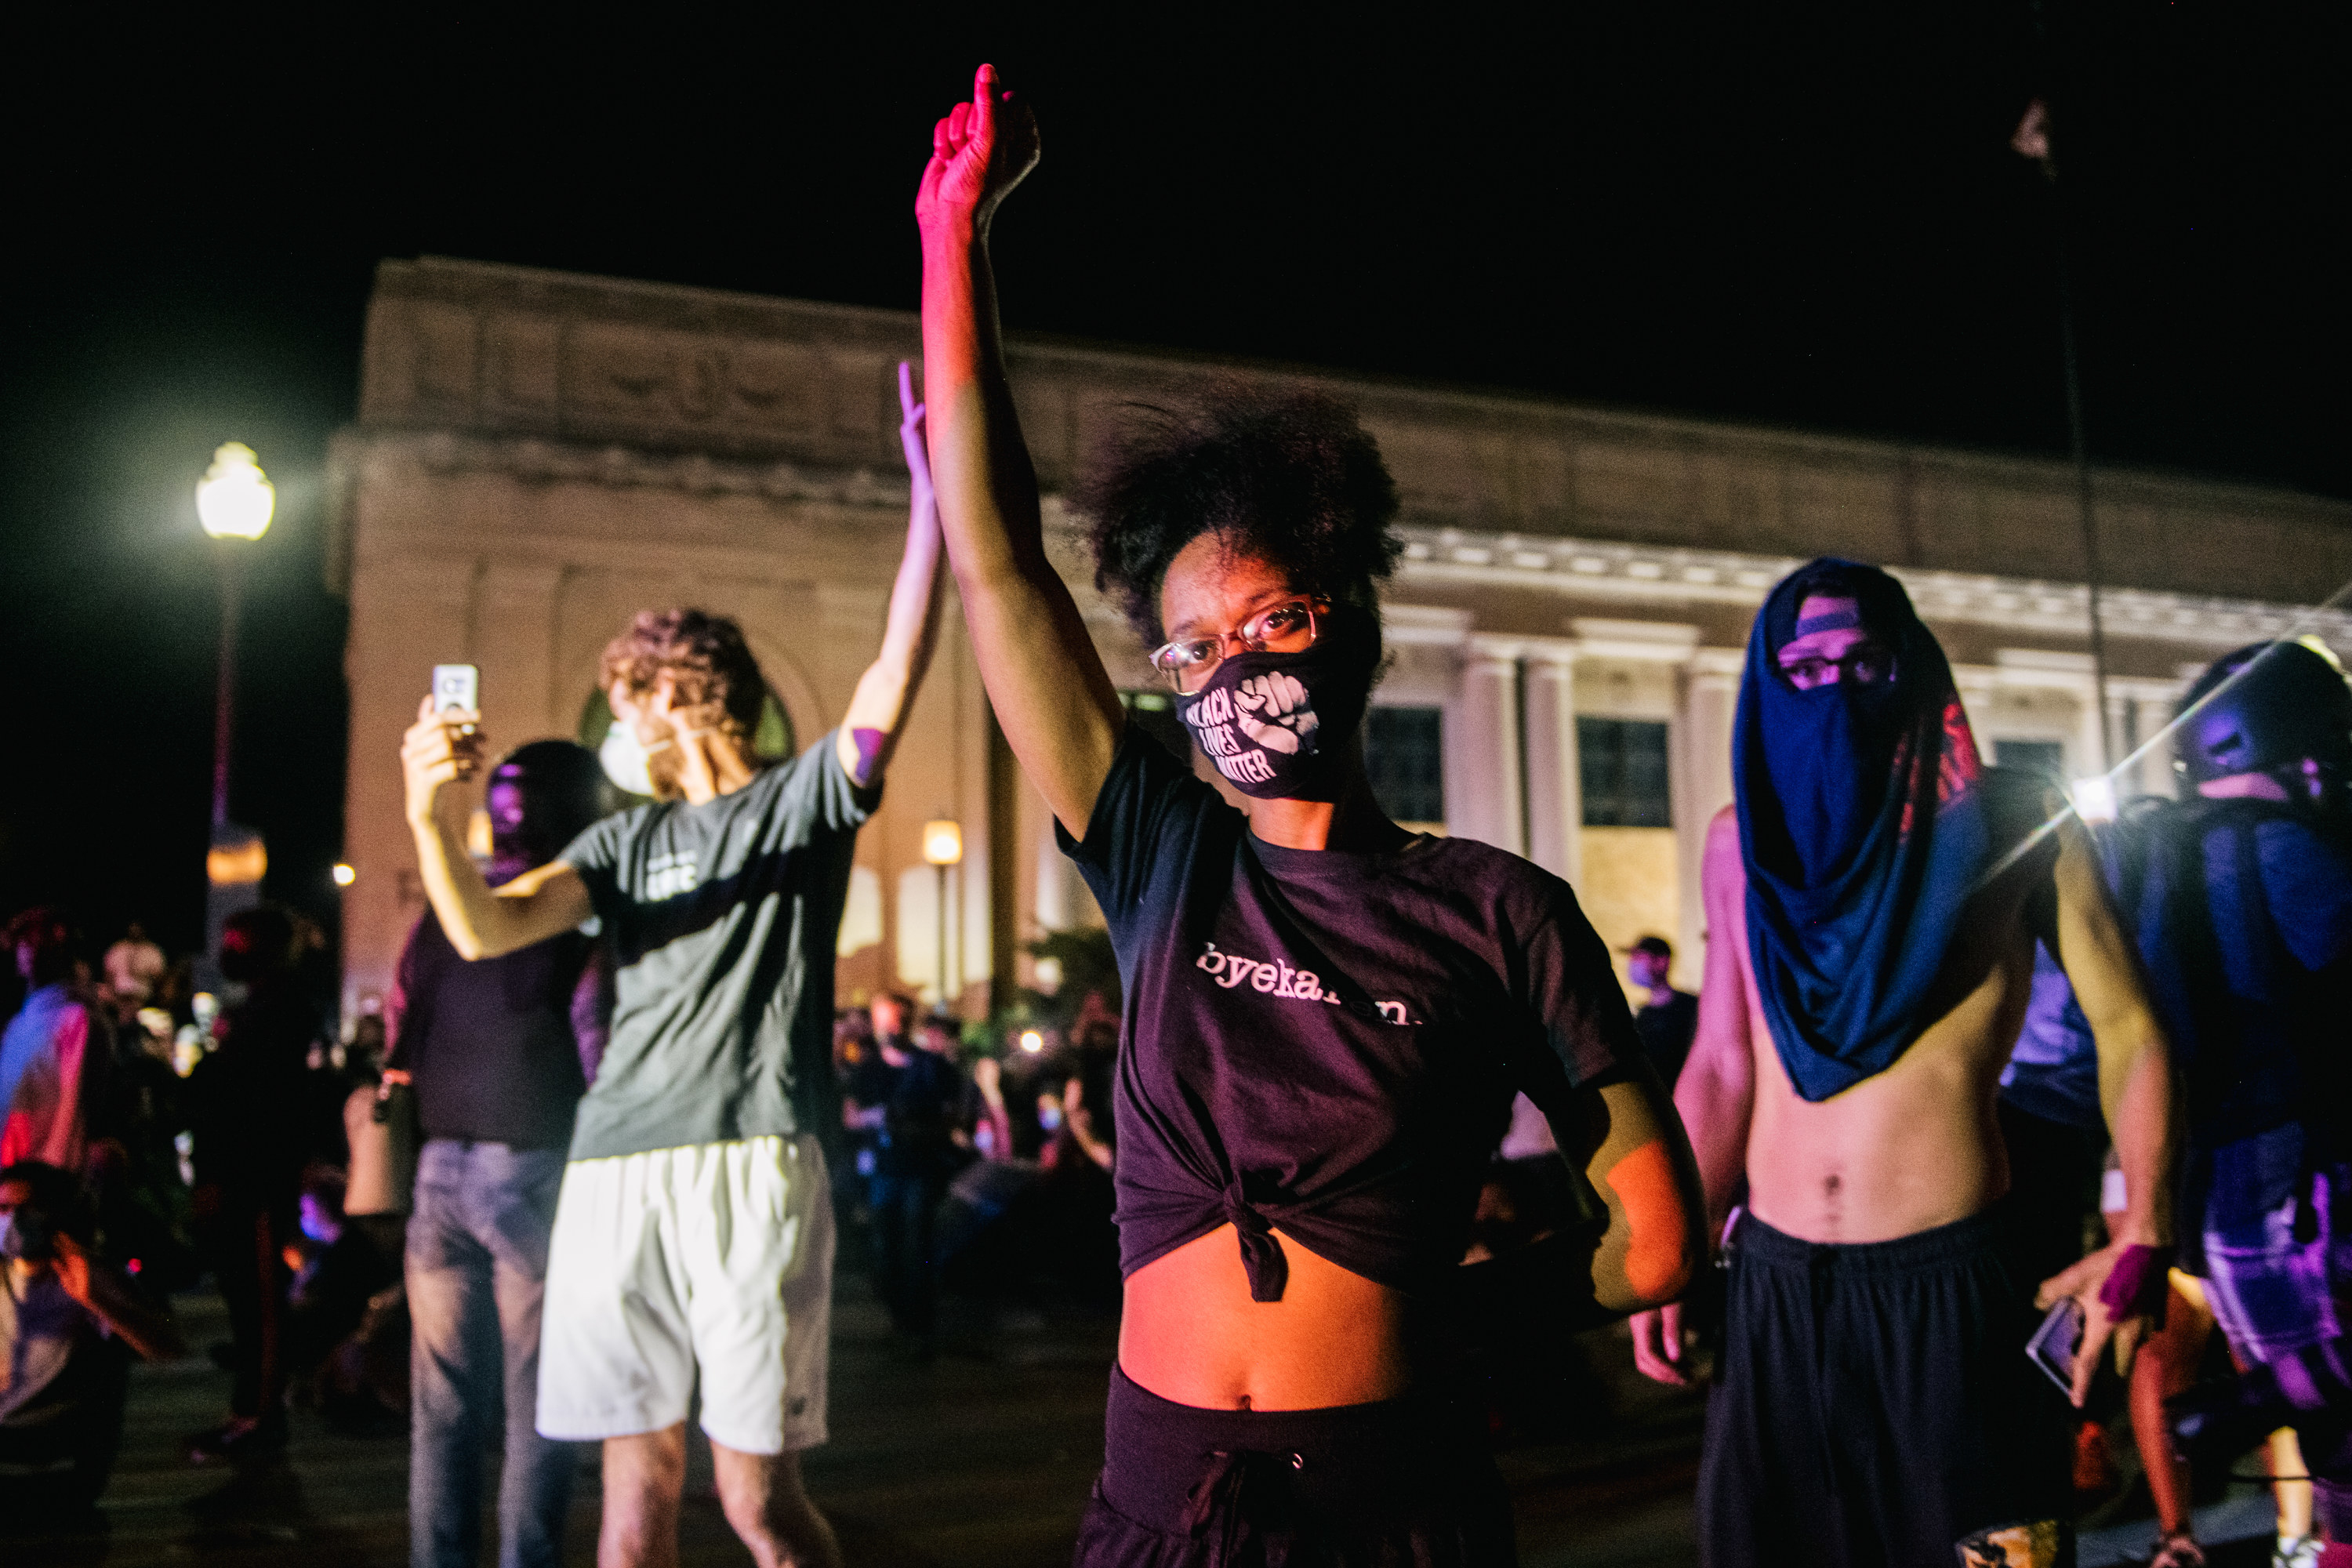 """A Black woman, wearing a tied-up black T-shirt and face mask that reads """"Black Lives Matter,"""" holds up her fist and looks into the camera"""